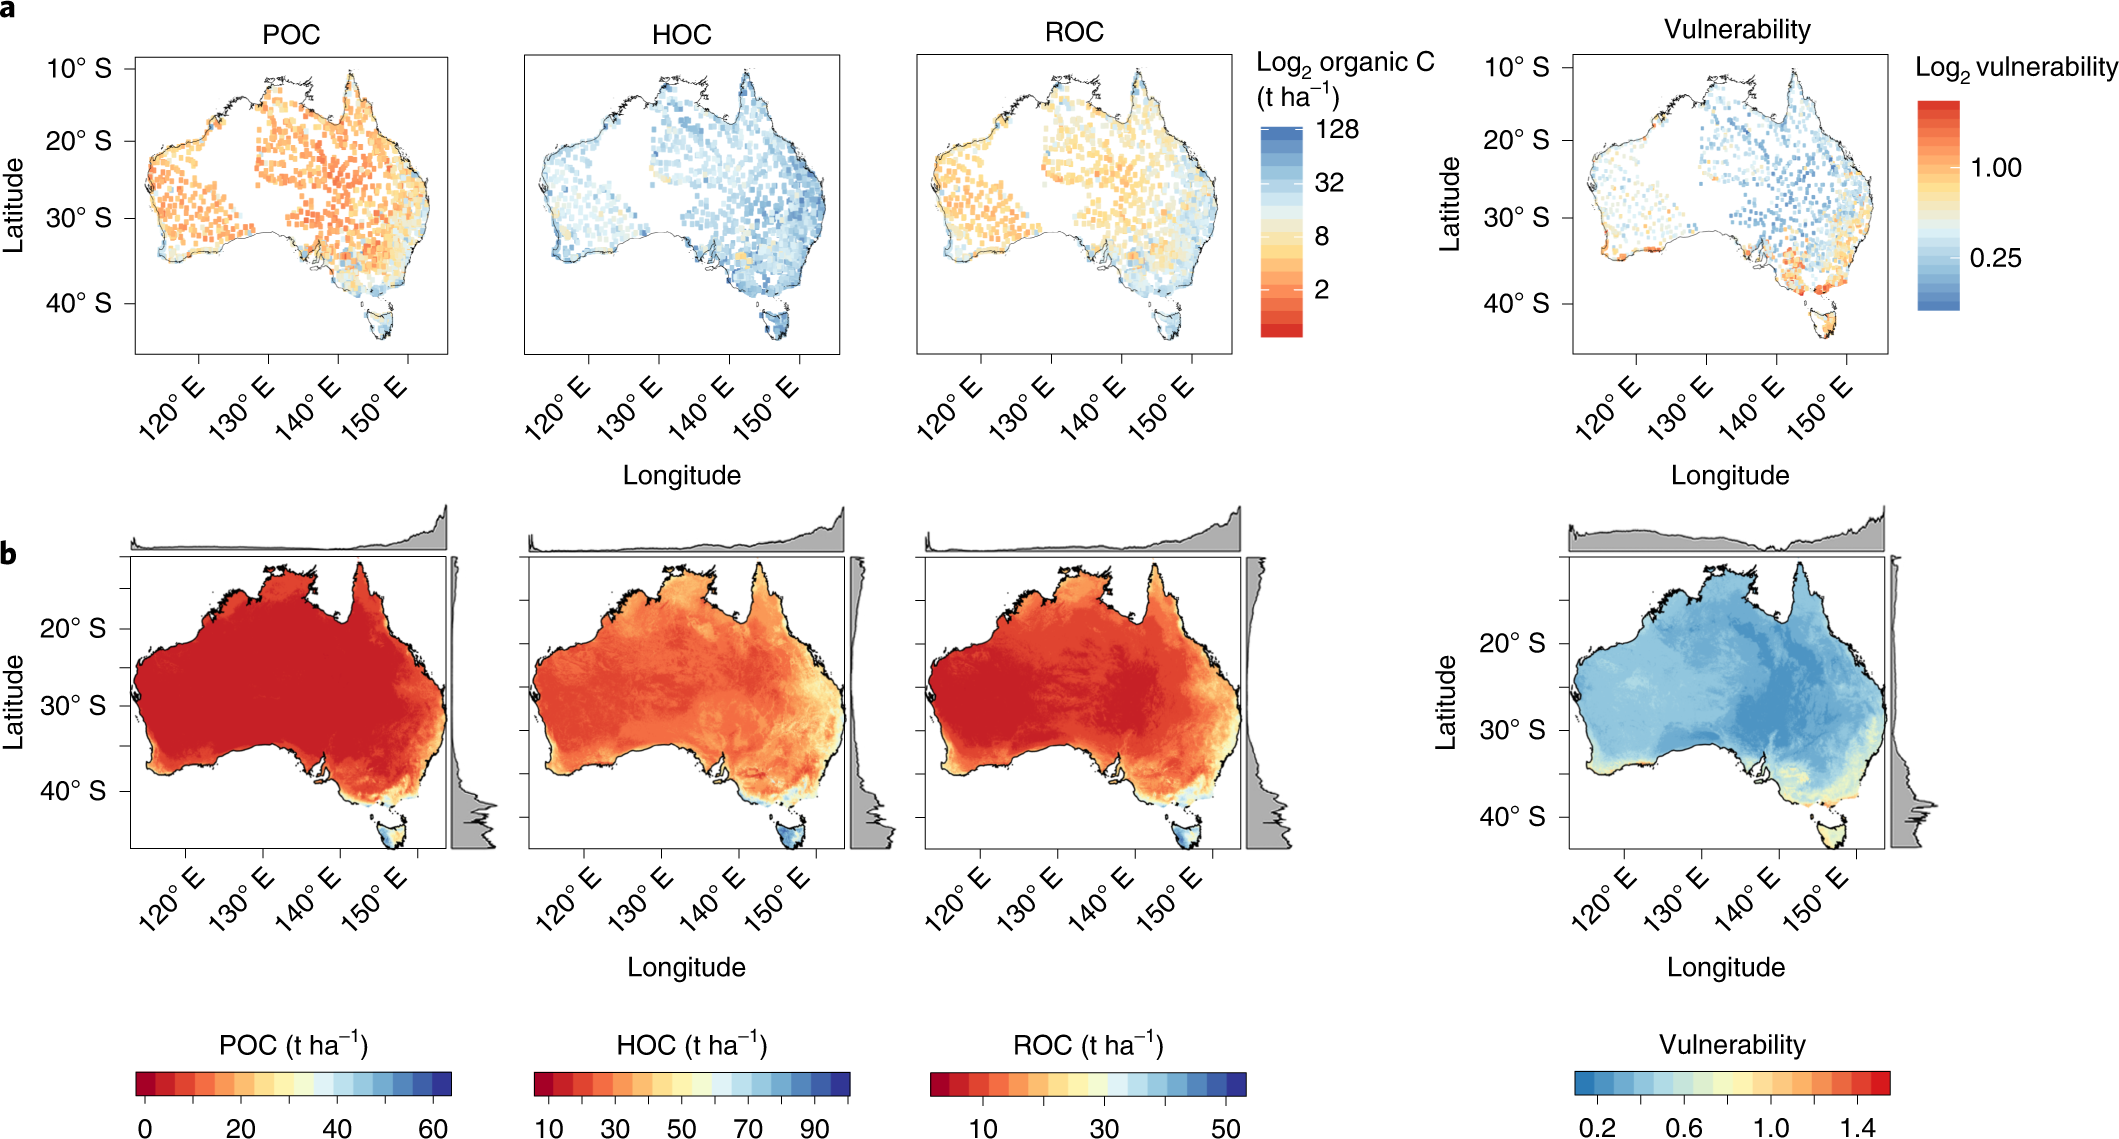 Continental-scale soil carbon composition and vulnerability